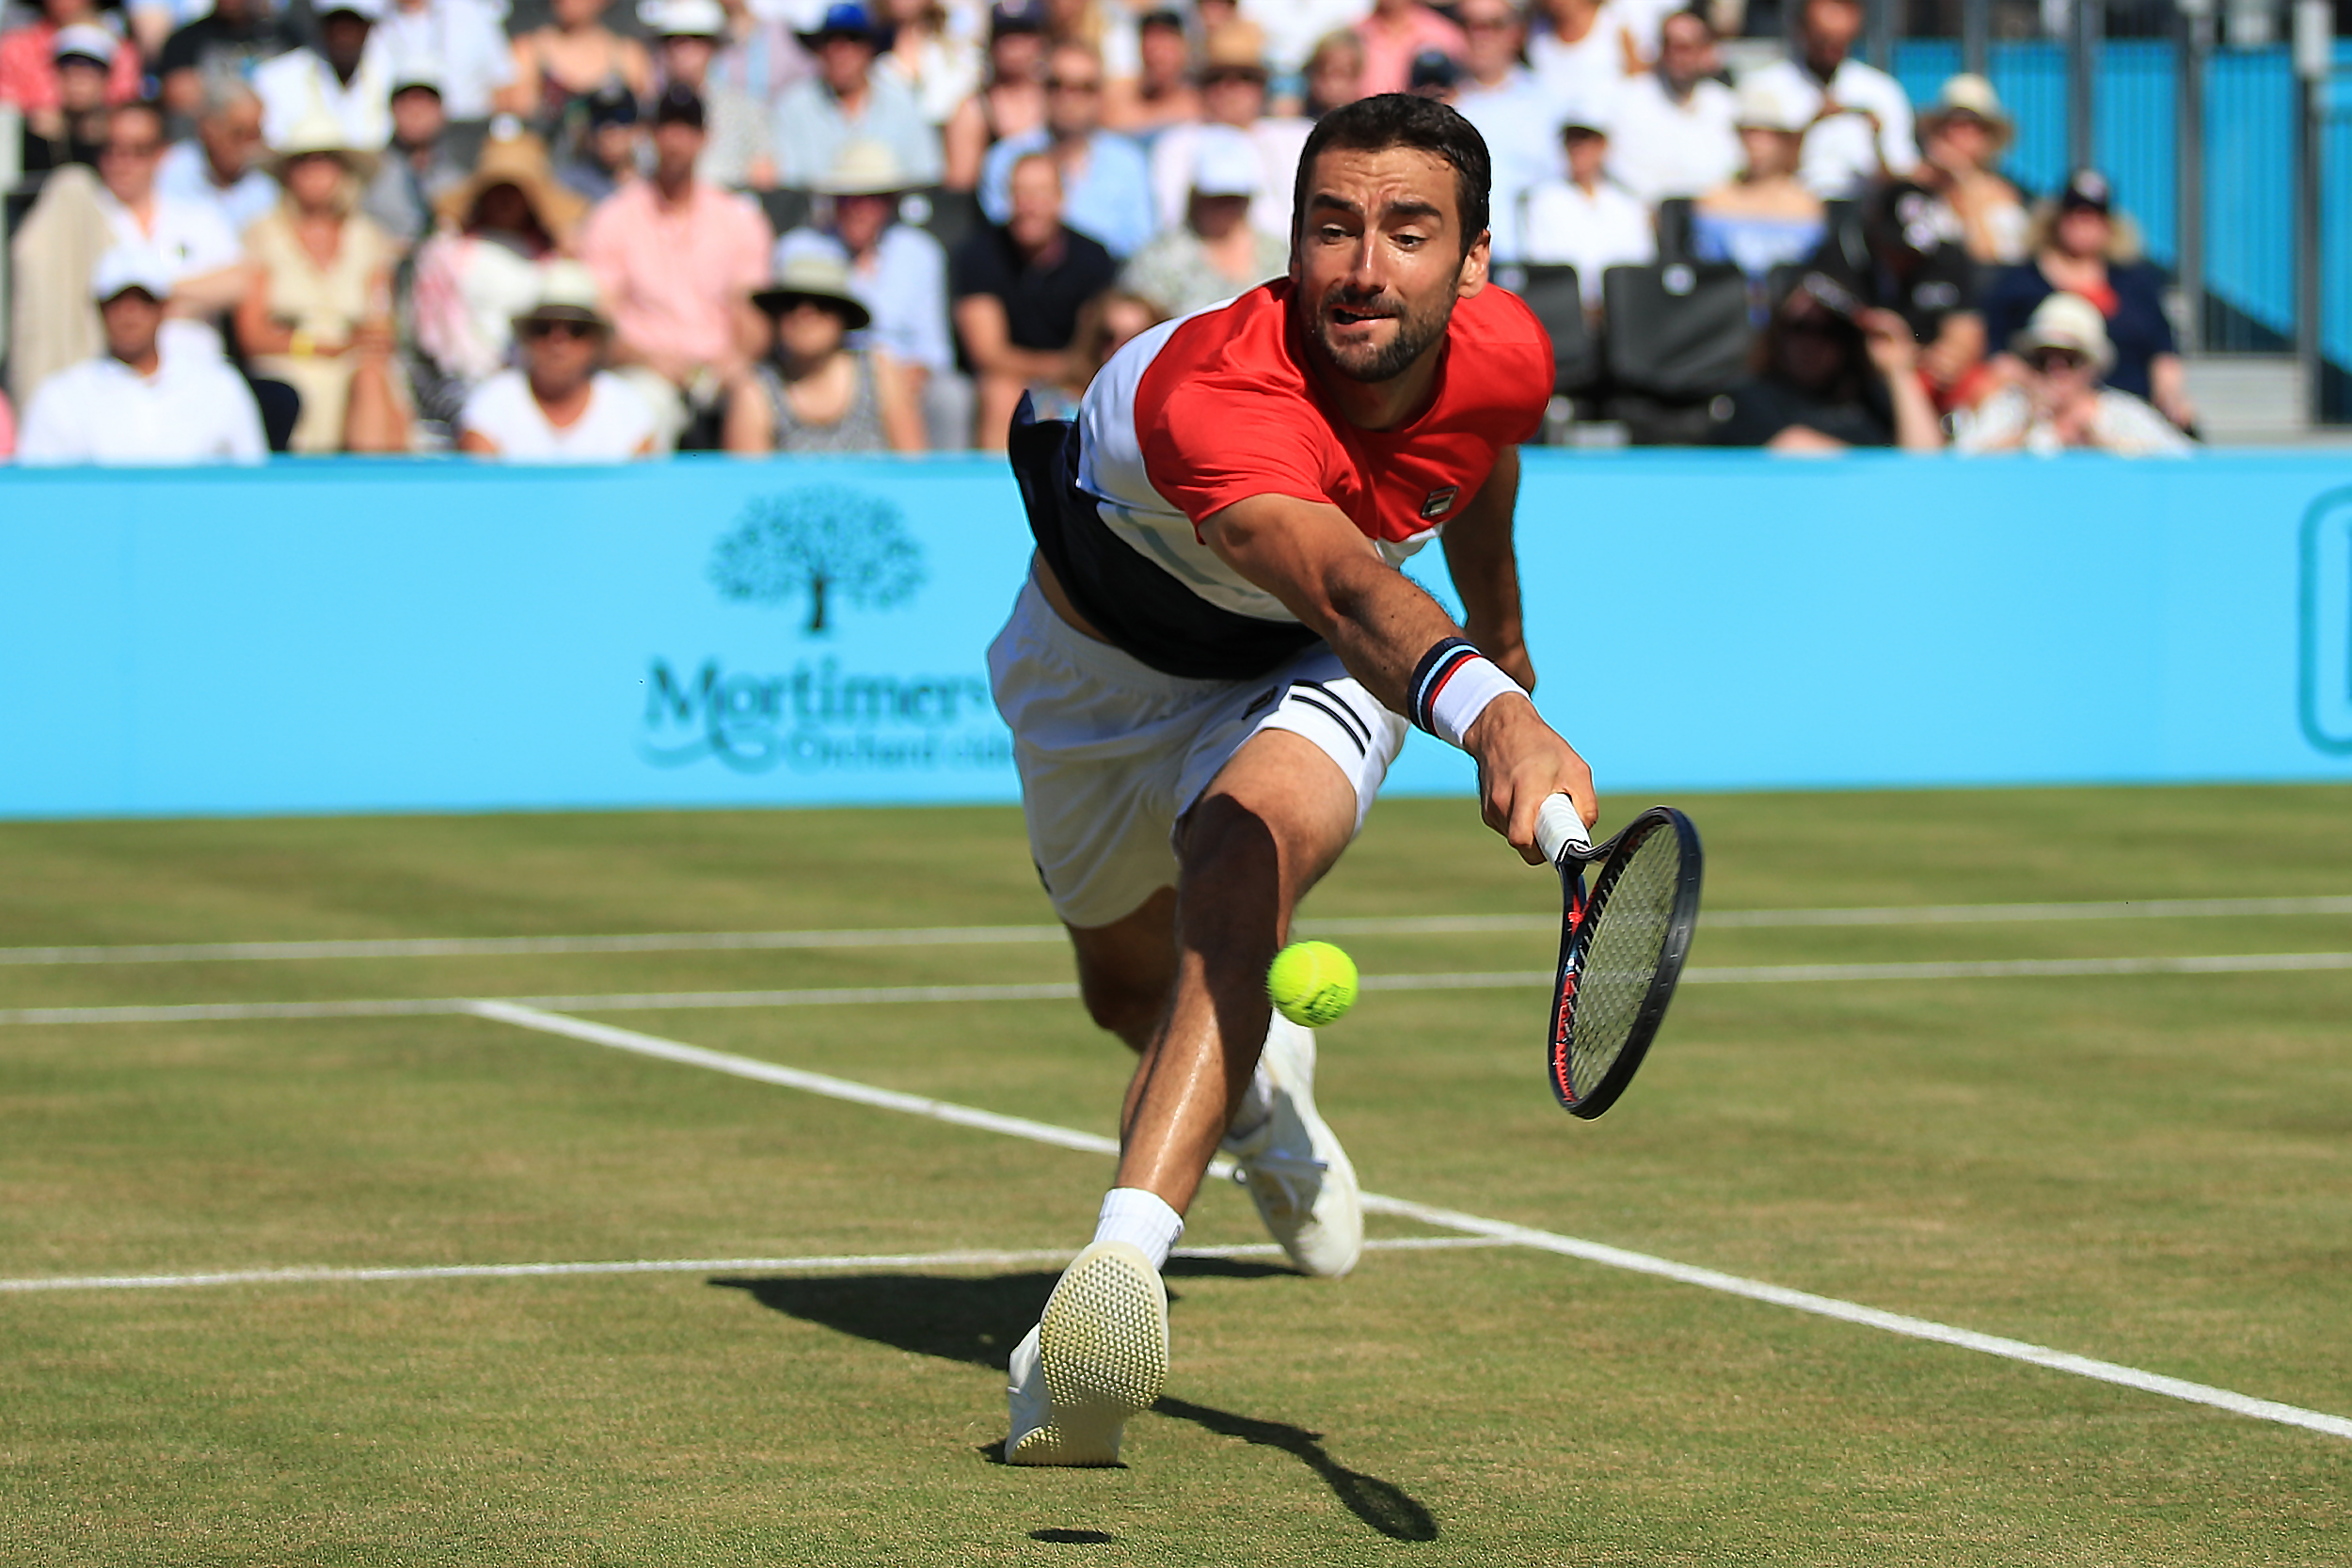 Marin Cilic is put through his pages during the final against Novak Djokovic